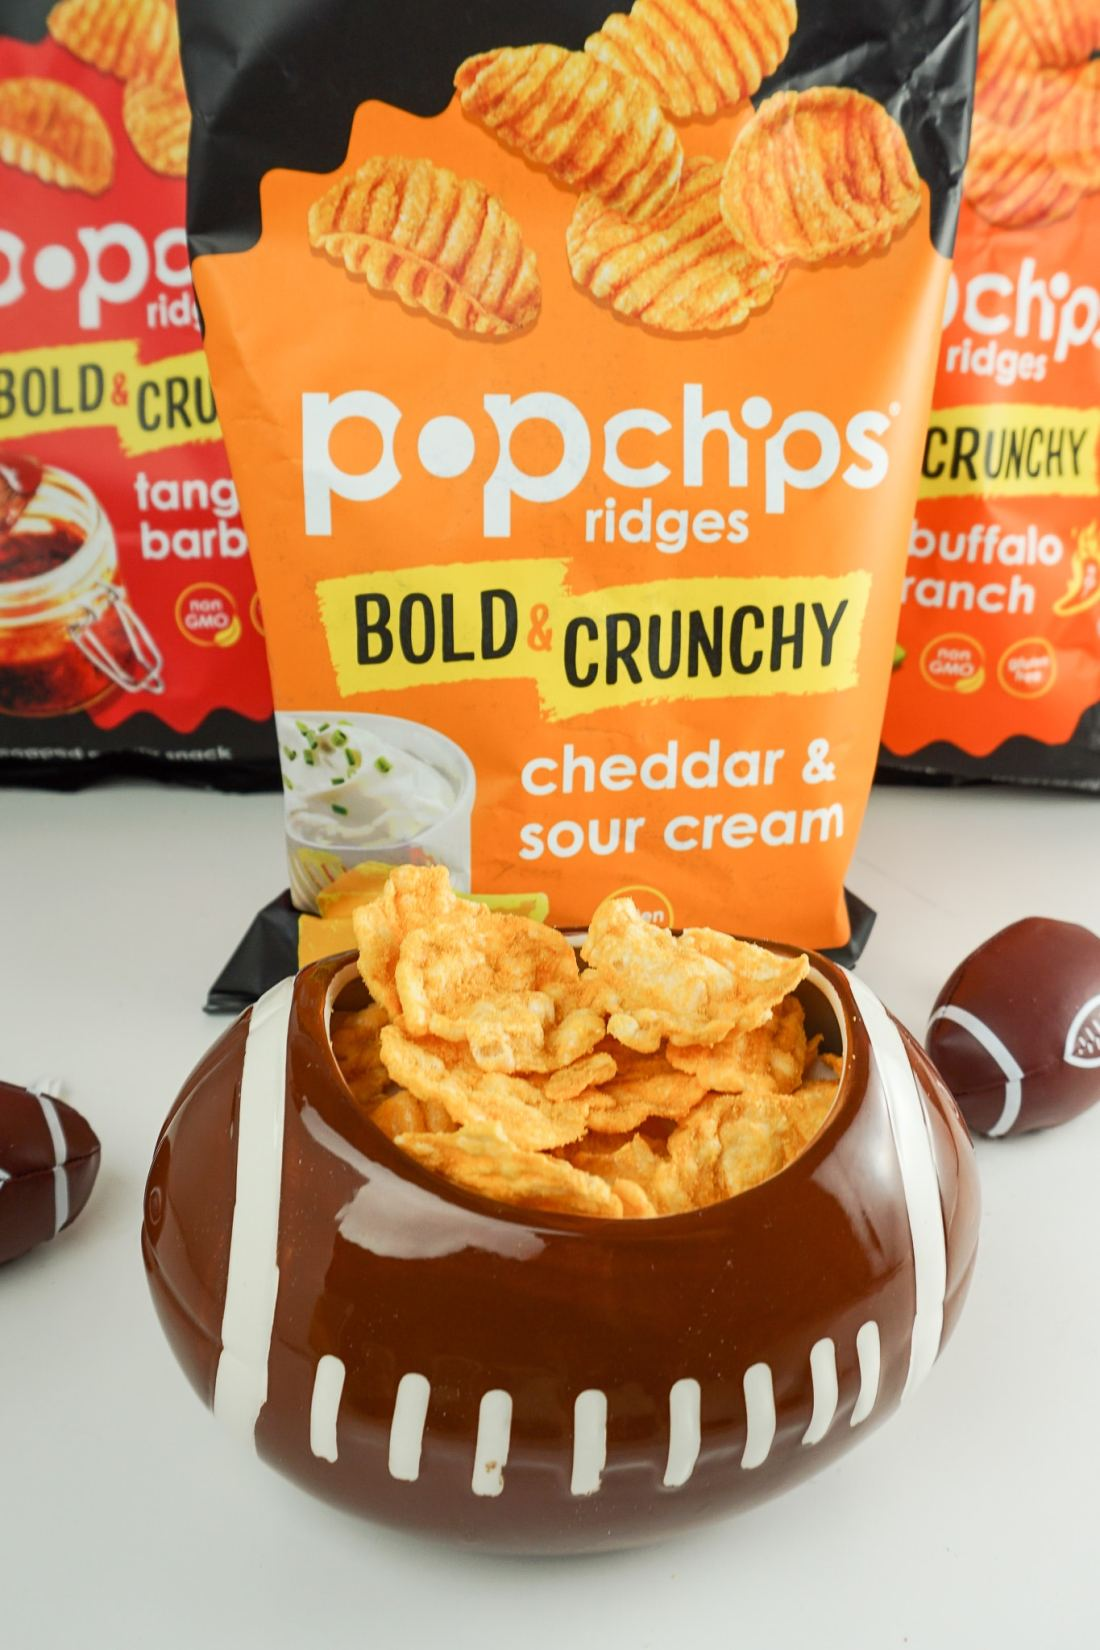 Popchips Cheddar and Sour Cream. Stop stressing about what everyone will be eating on the Big Game Day. Take advantage of some awesome No-Cook Easy Game Day Snack Idea's on the blog now.